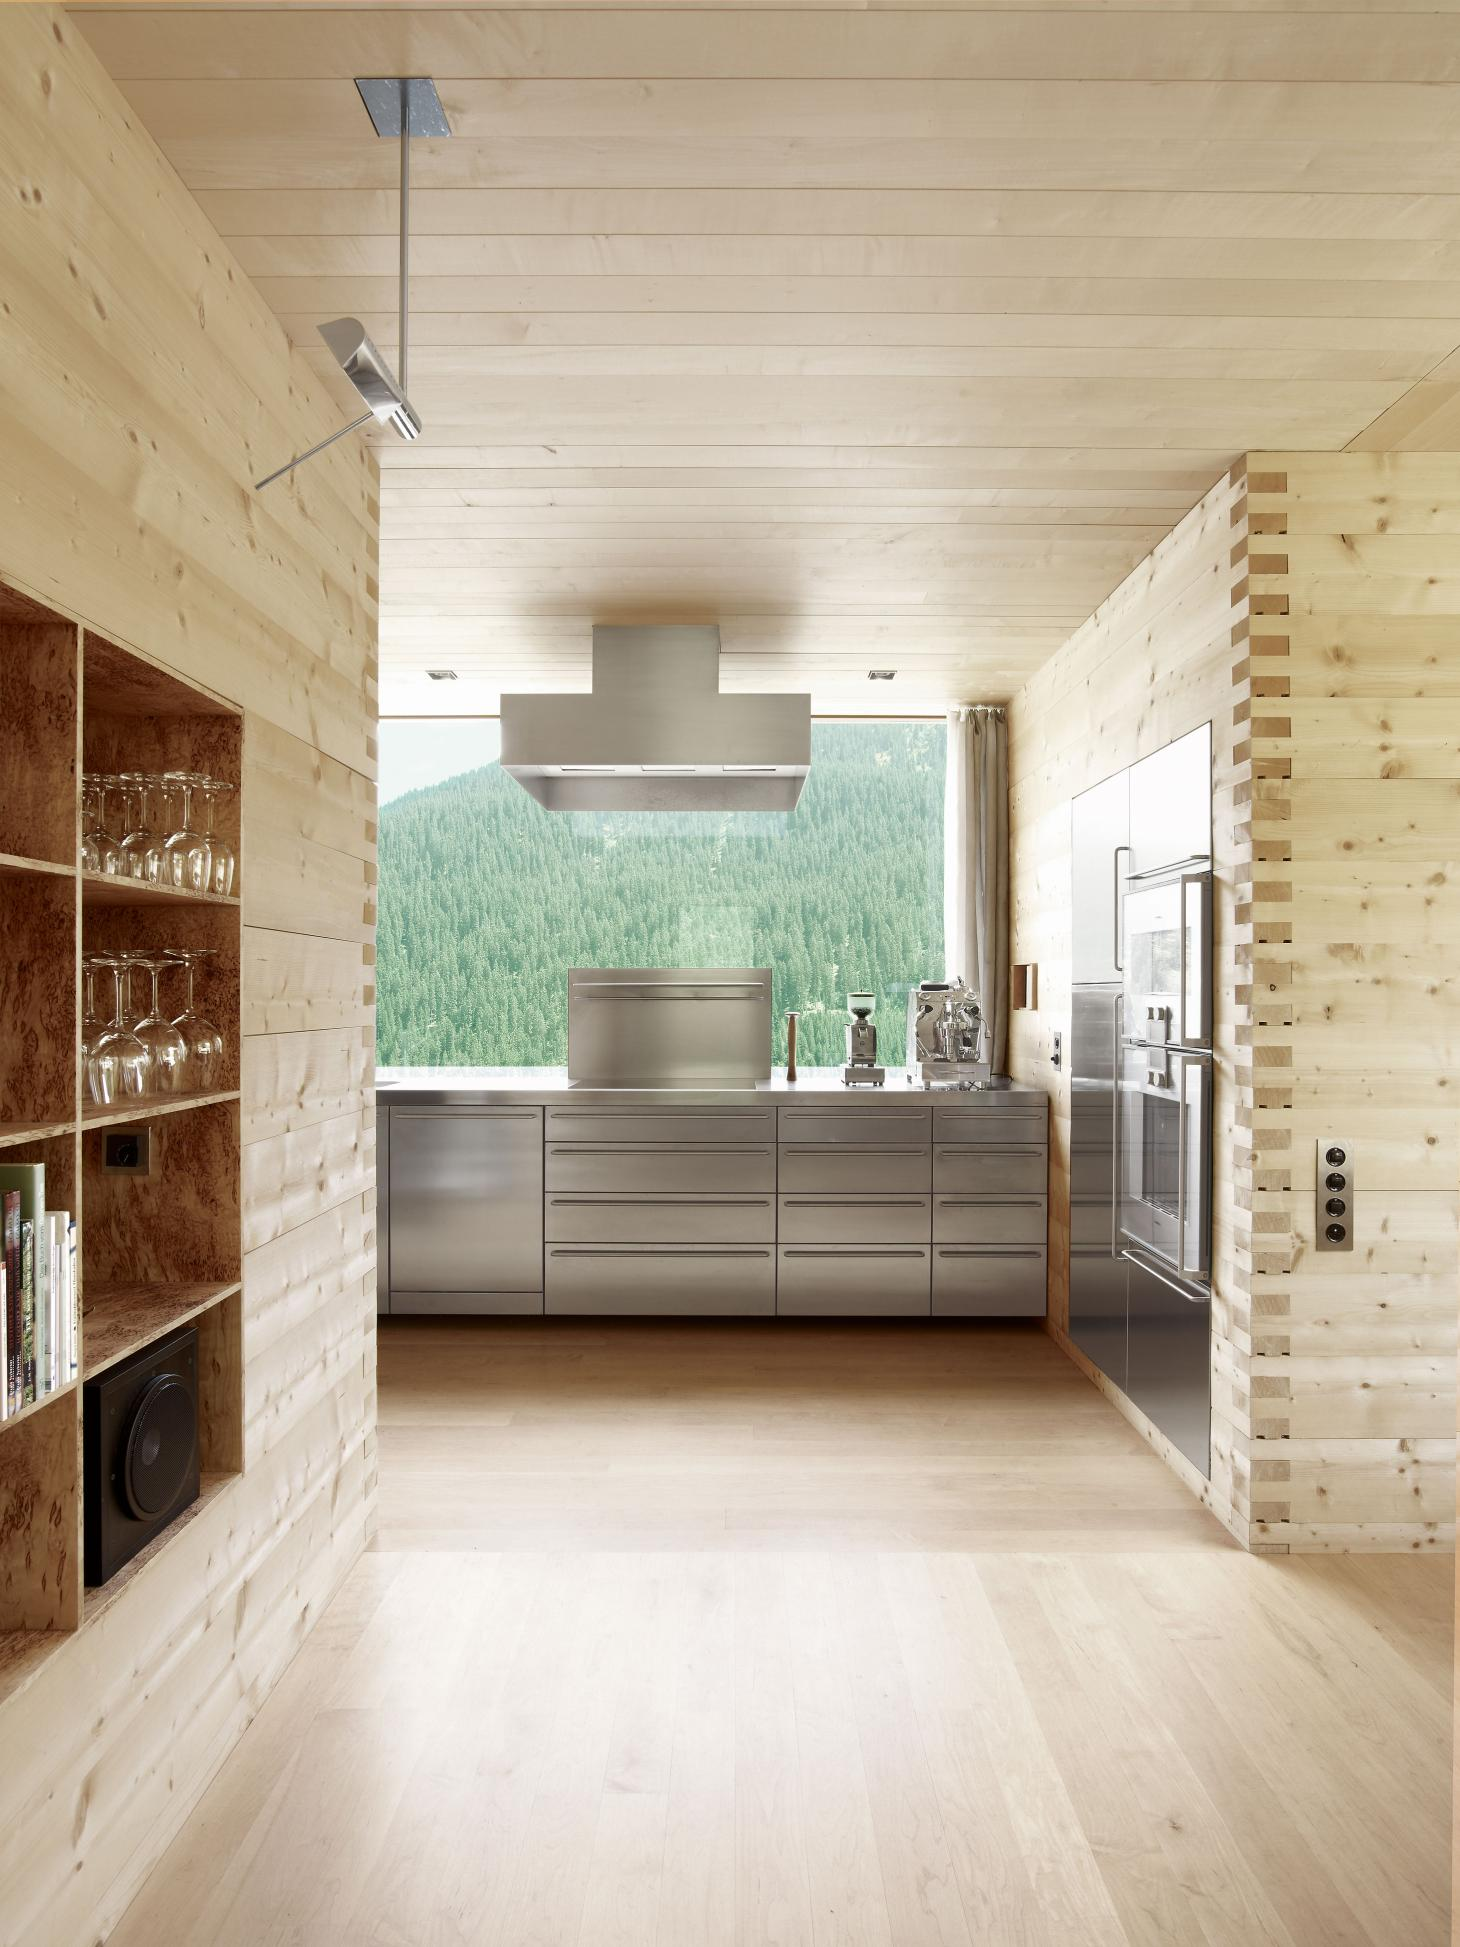 Bespoke cabinetry in Peter Zumthor's kitchen